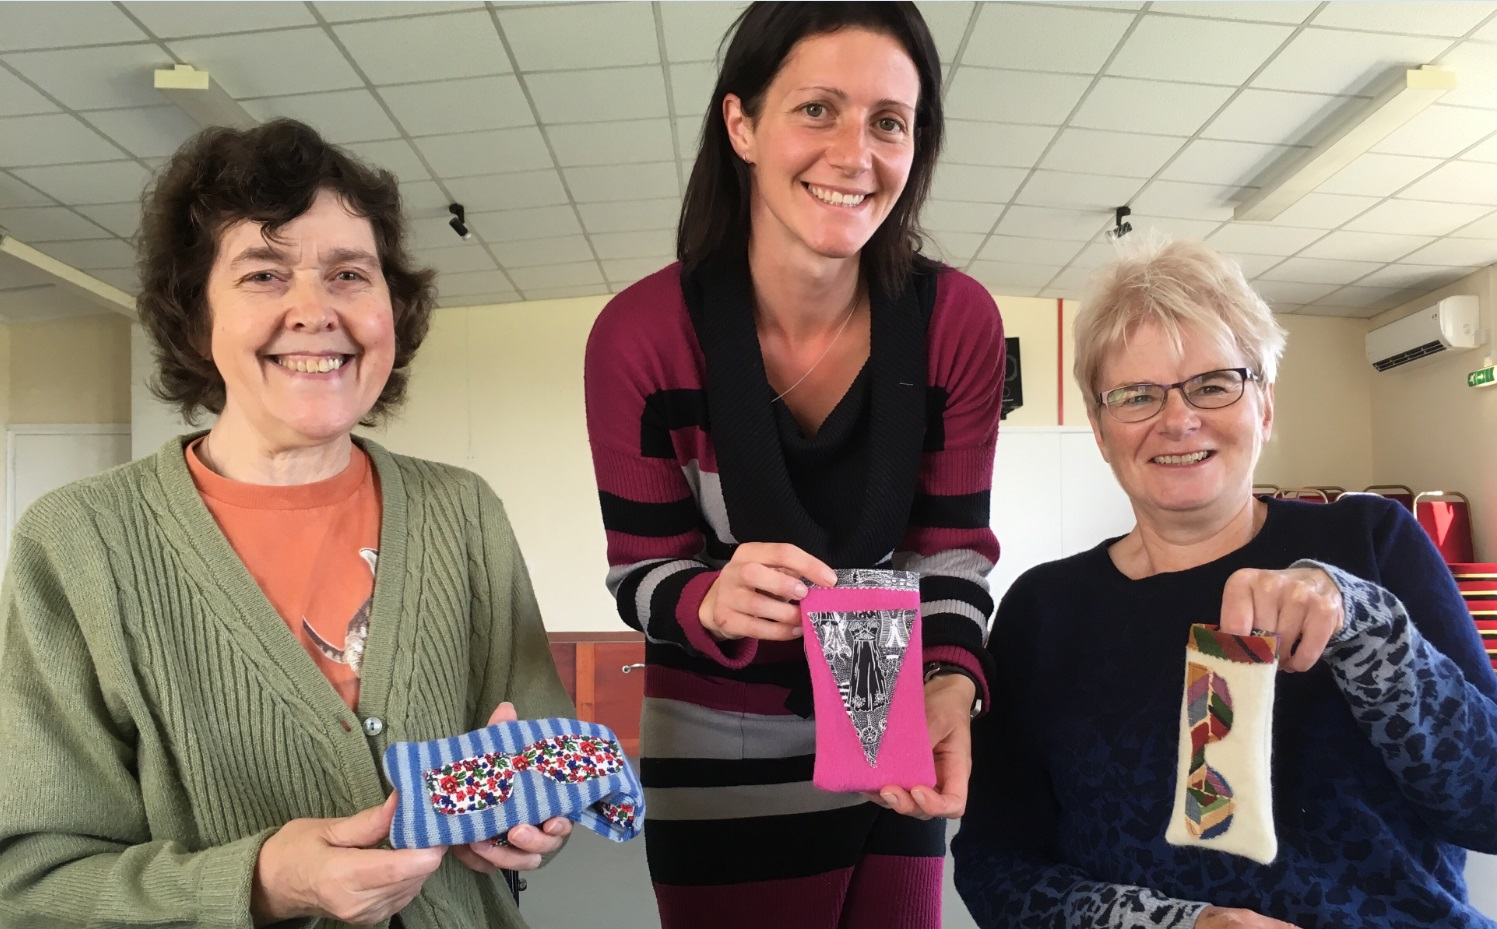 Workshop participants show off their creations in Necton